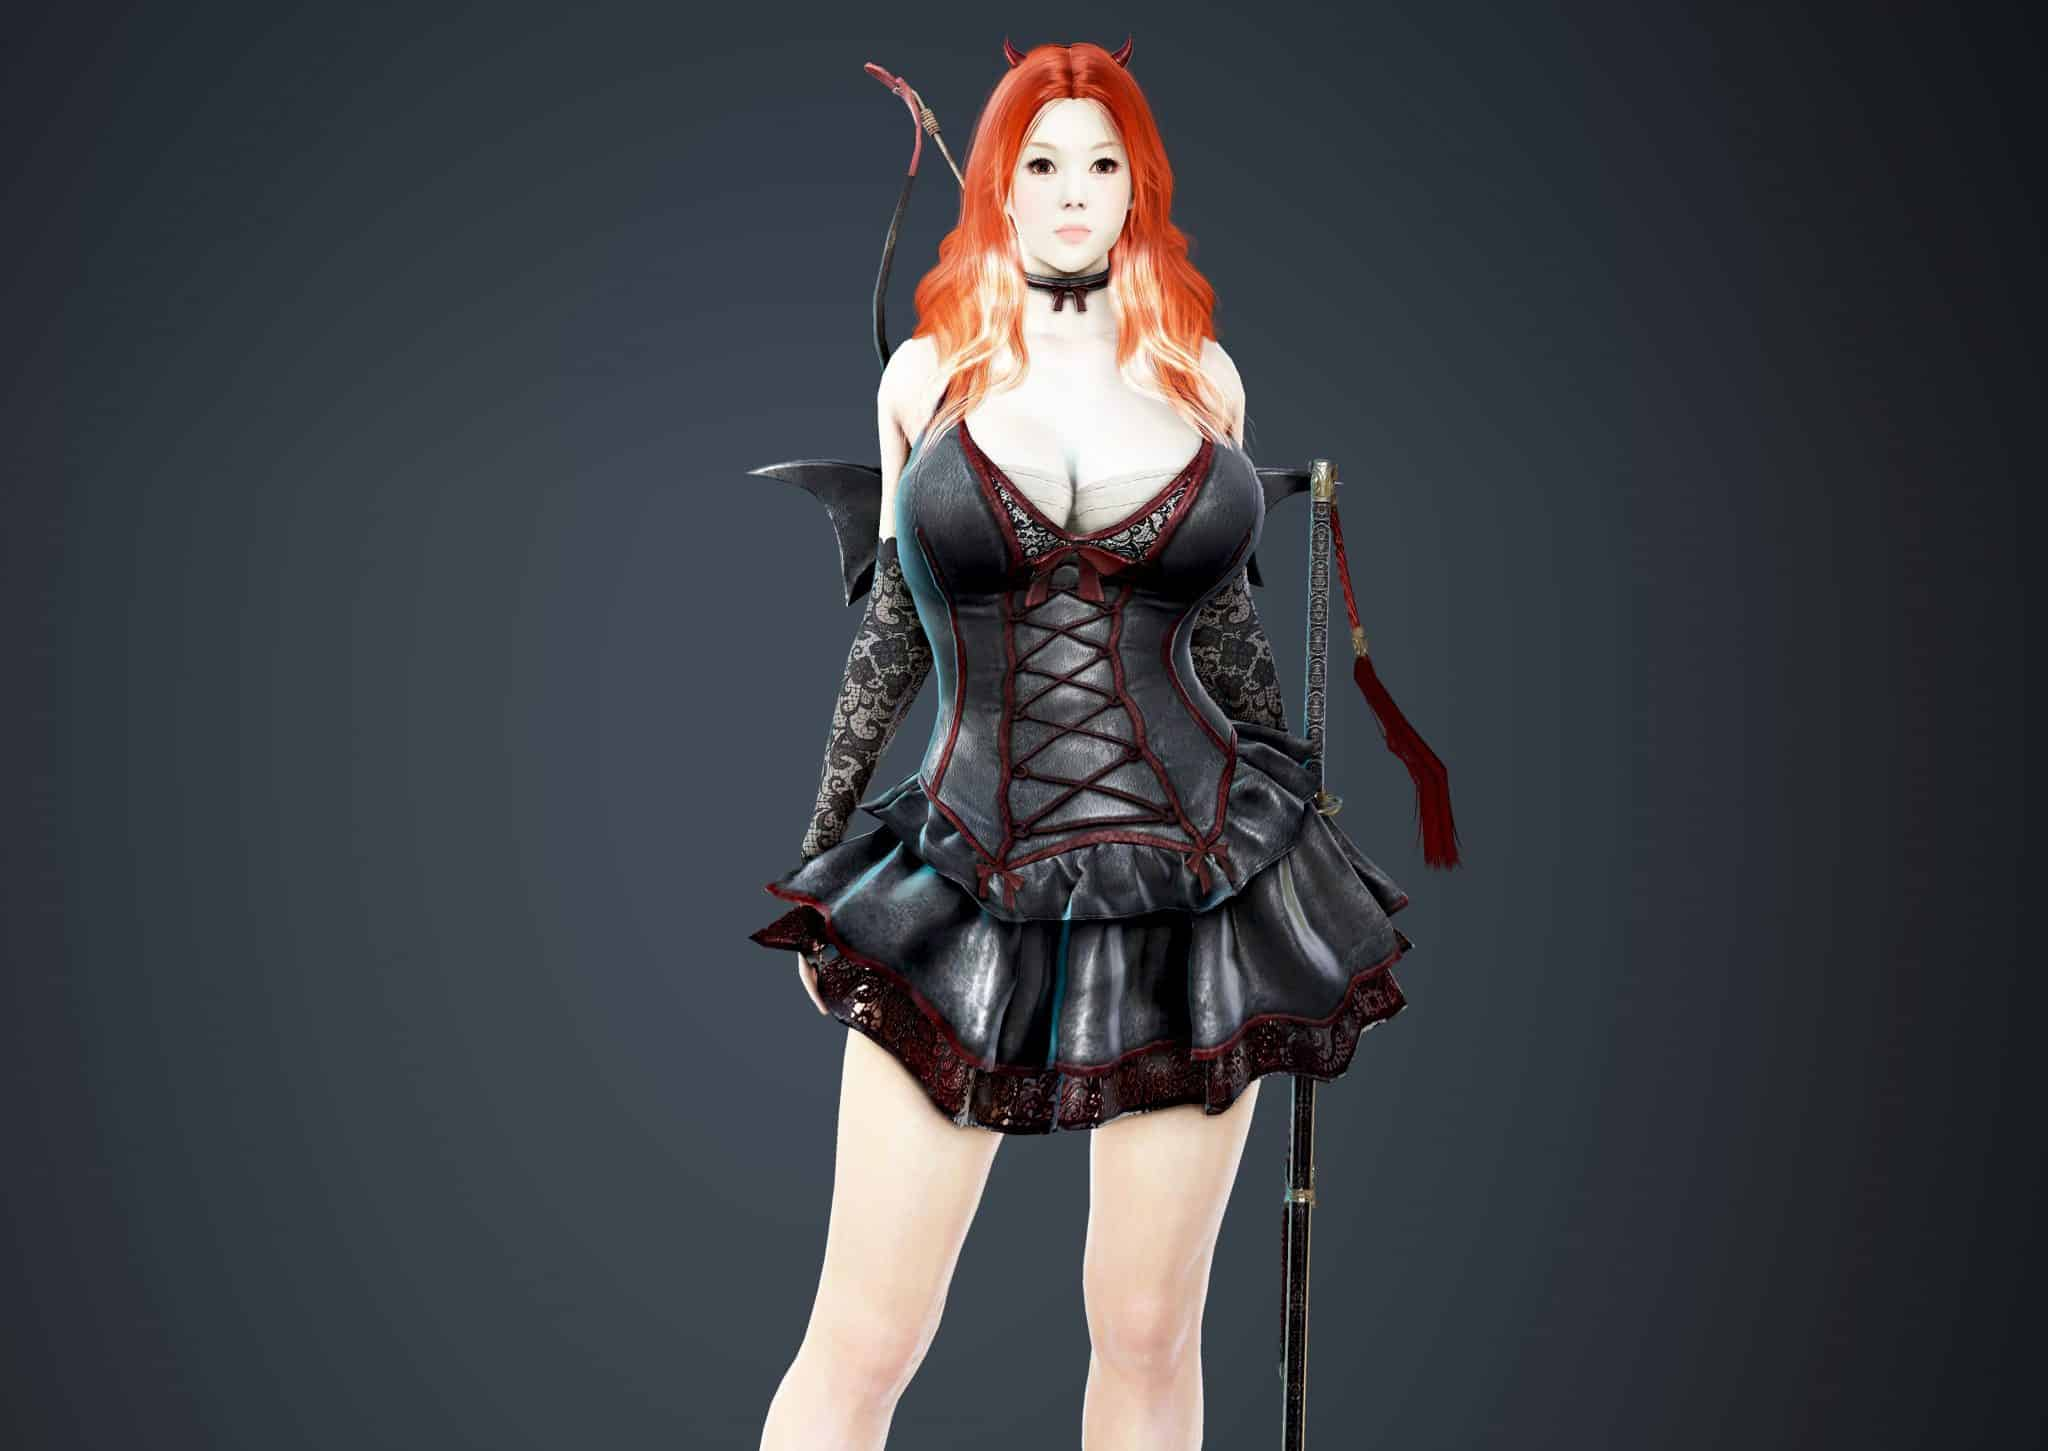 Maehwa Bloody Dress, Bloody Outfit Set, Halloween 2018, Black Desert Online